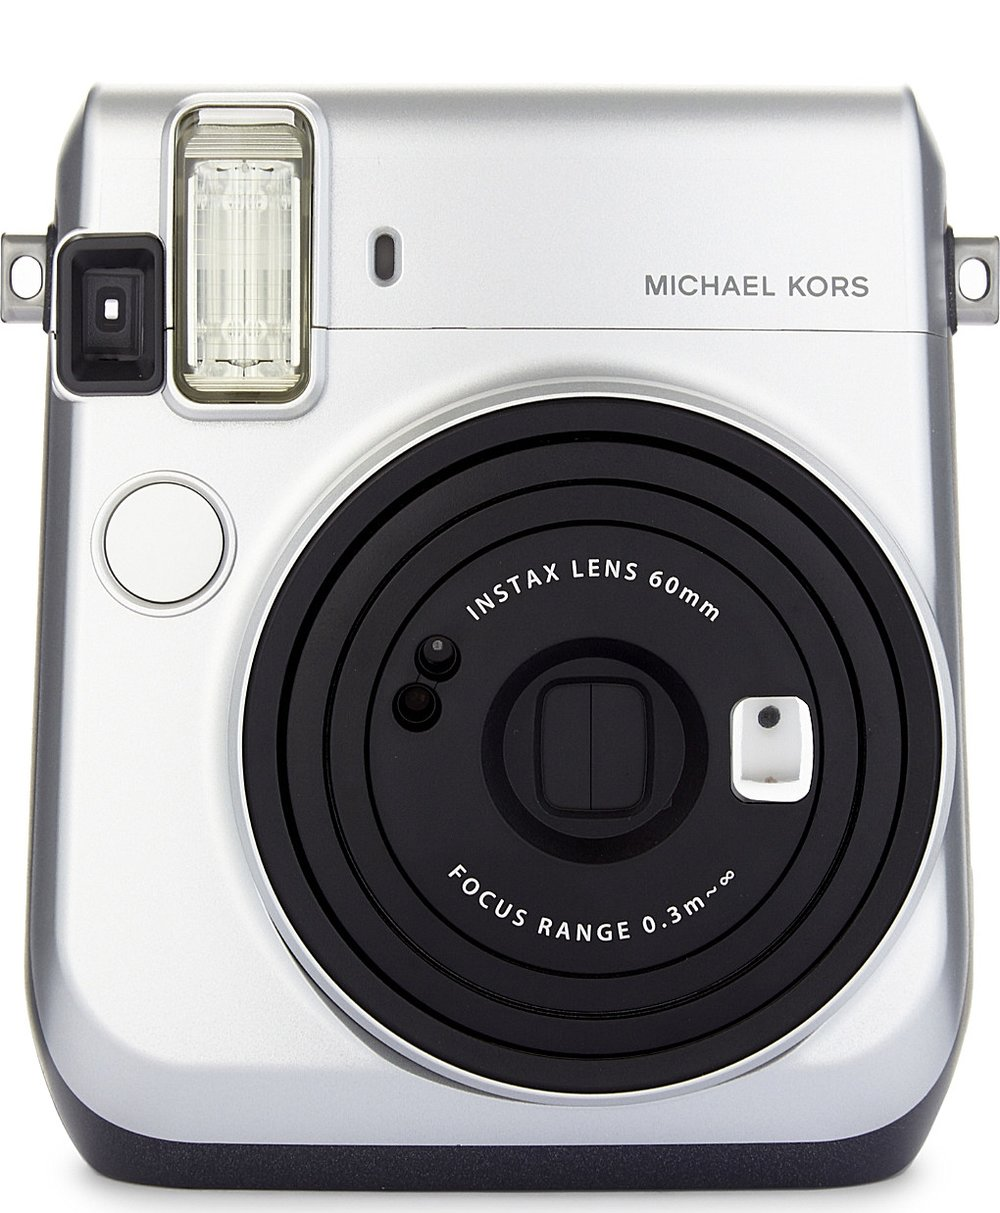 Michael Kors Camera - Michael Michael Kors Instax Mini 70 Instant CameraAvailable at Selfridges, £120.00